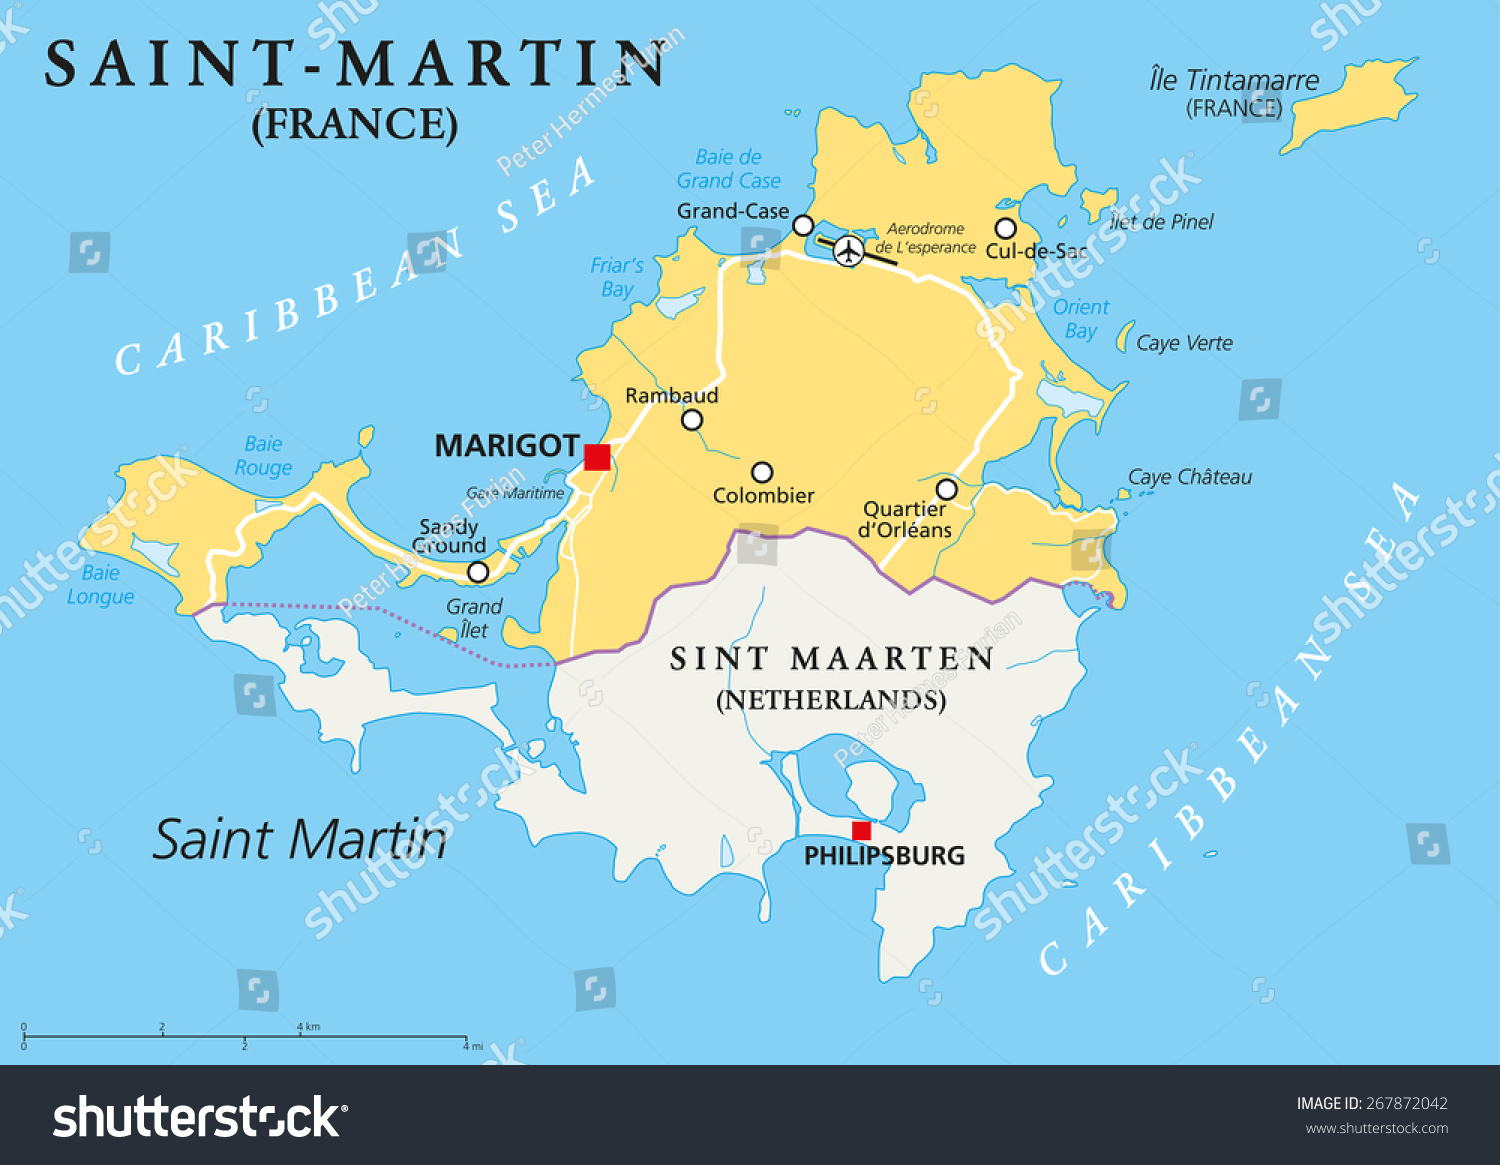 Caribbean Islands Countries And Capitals The Most Beautiful - Map of the caribbean island